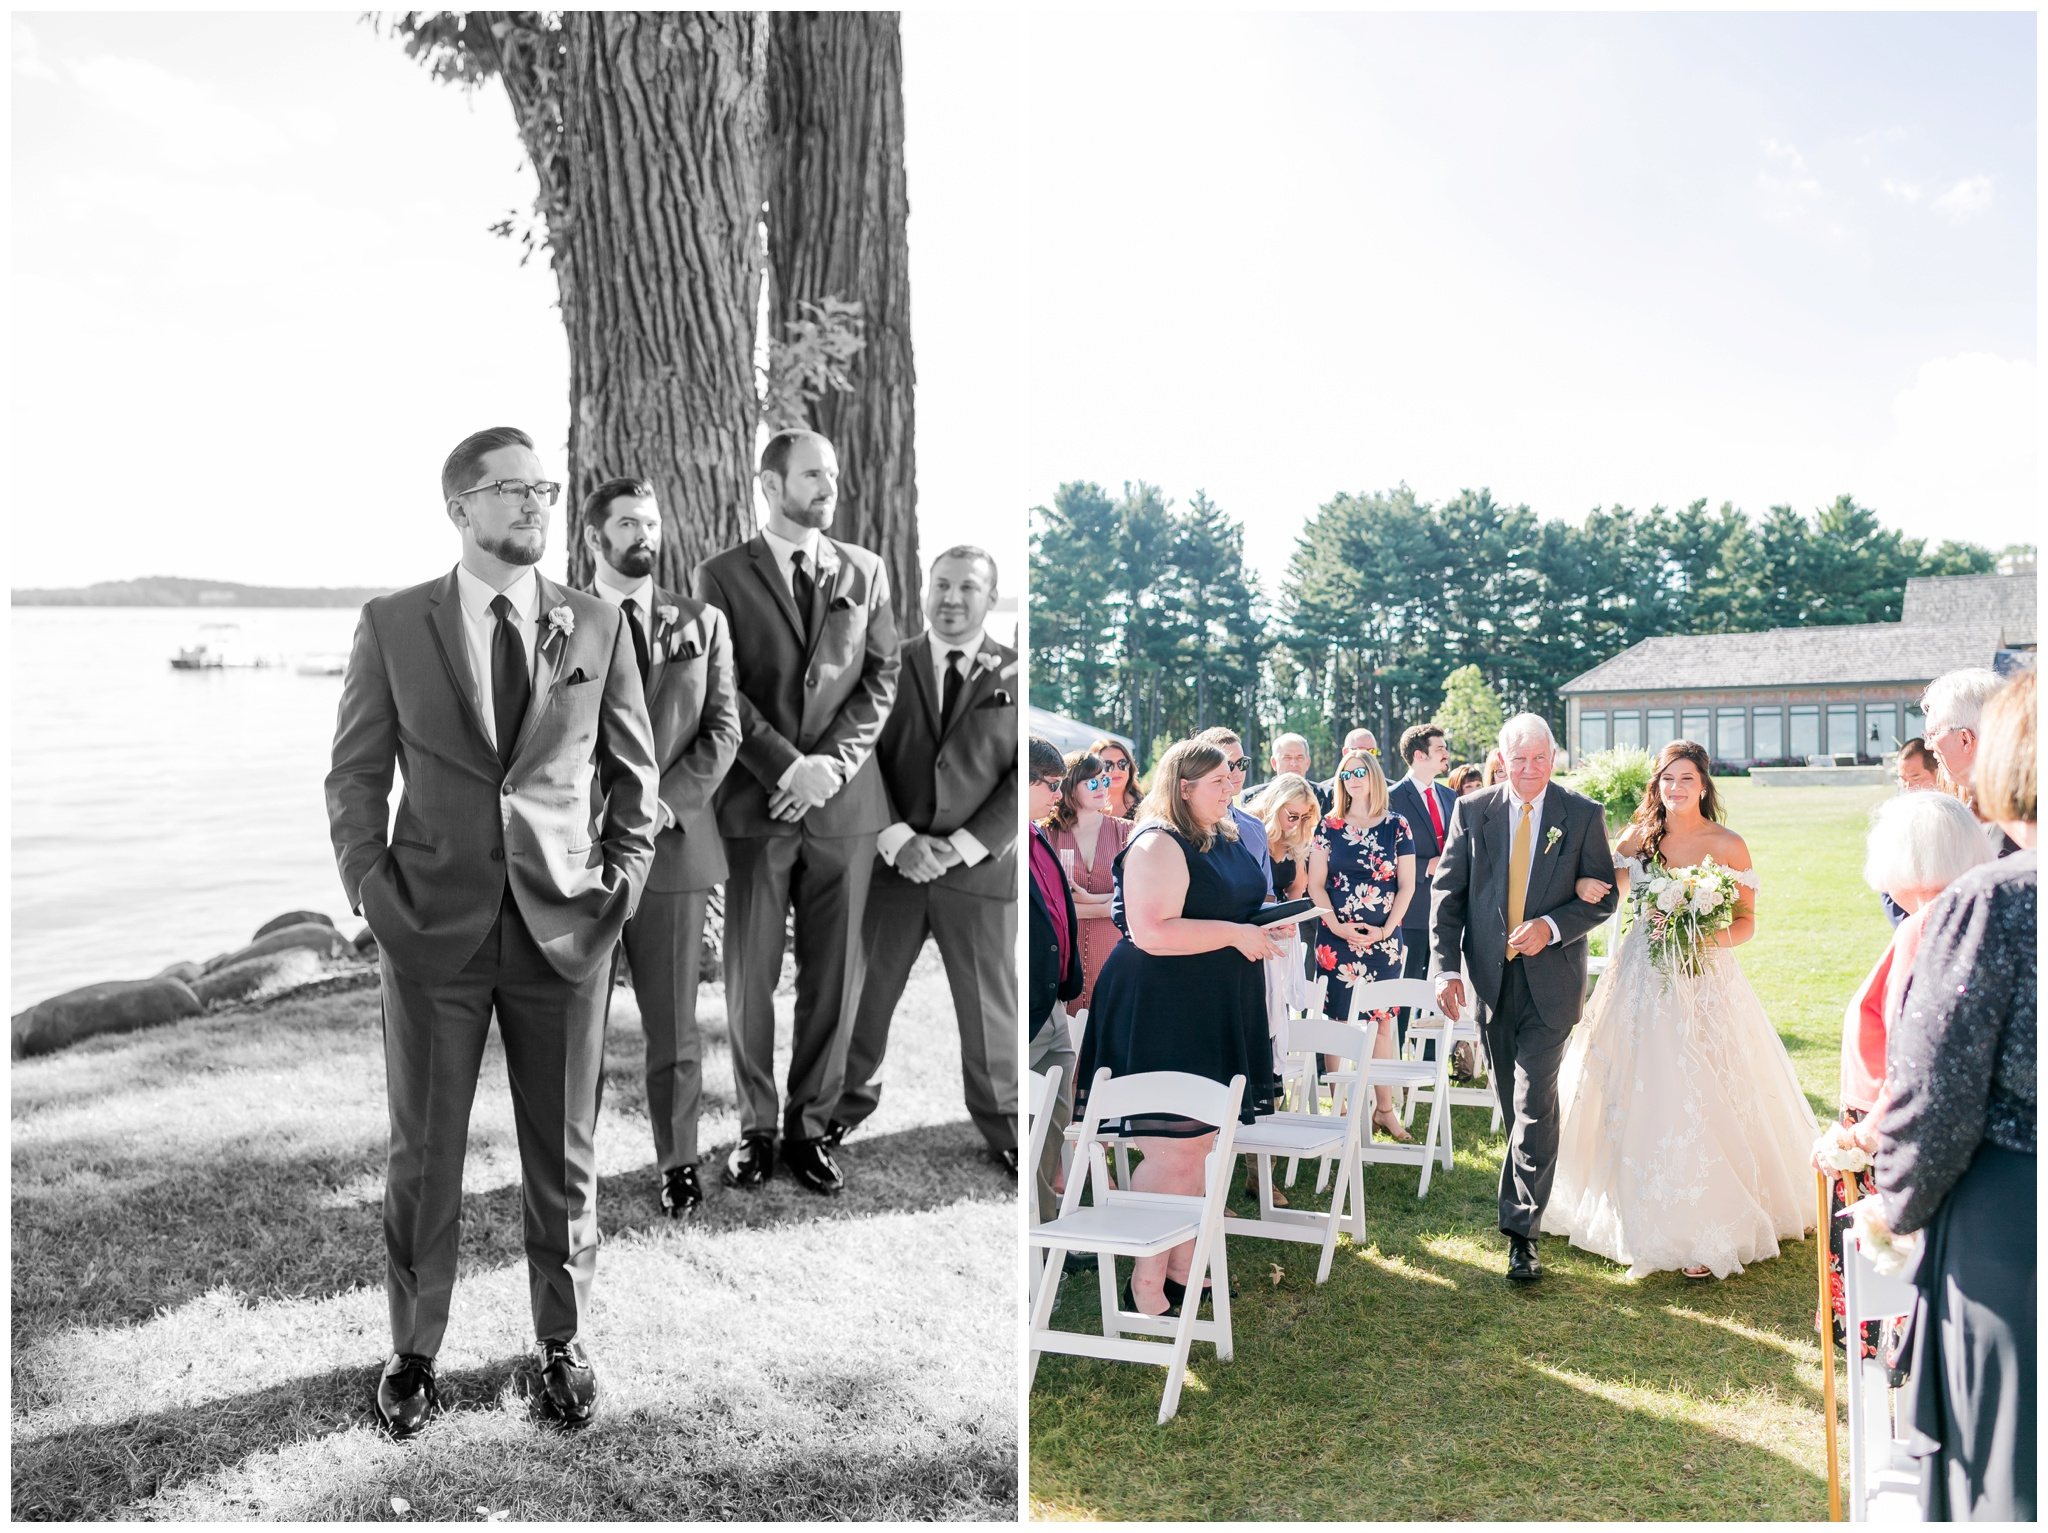 bishops_bay_country_club_wedding_middleton_wisconsin_caynay_photo_4711.jpg